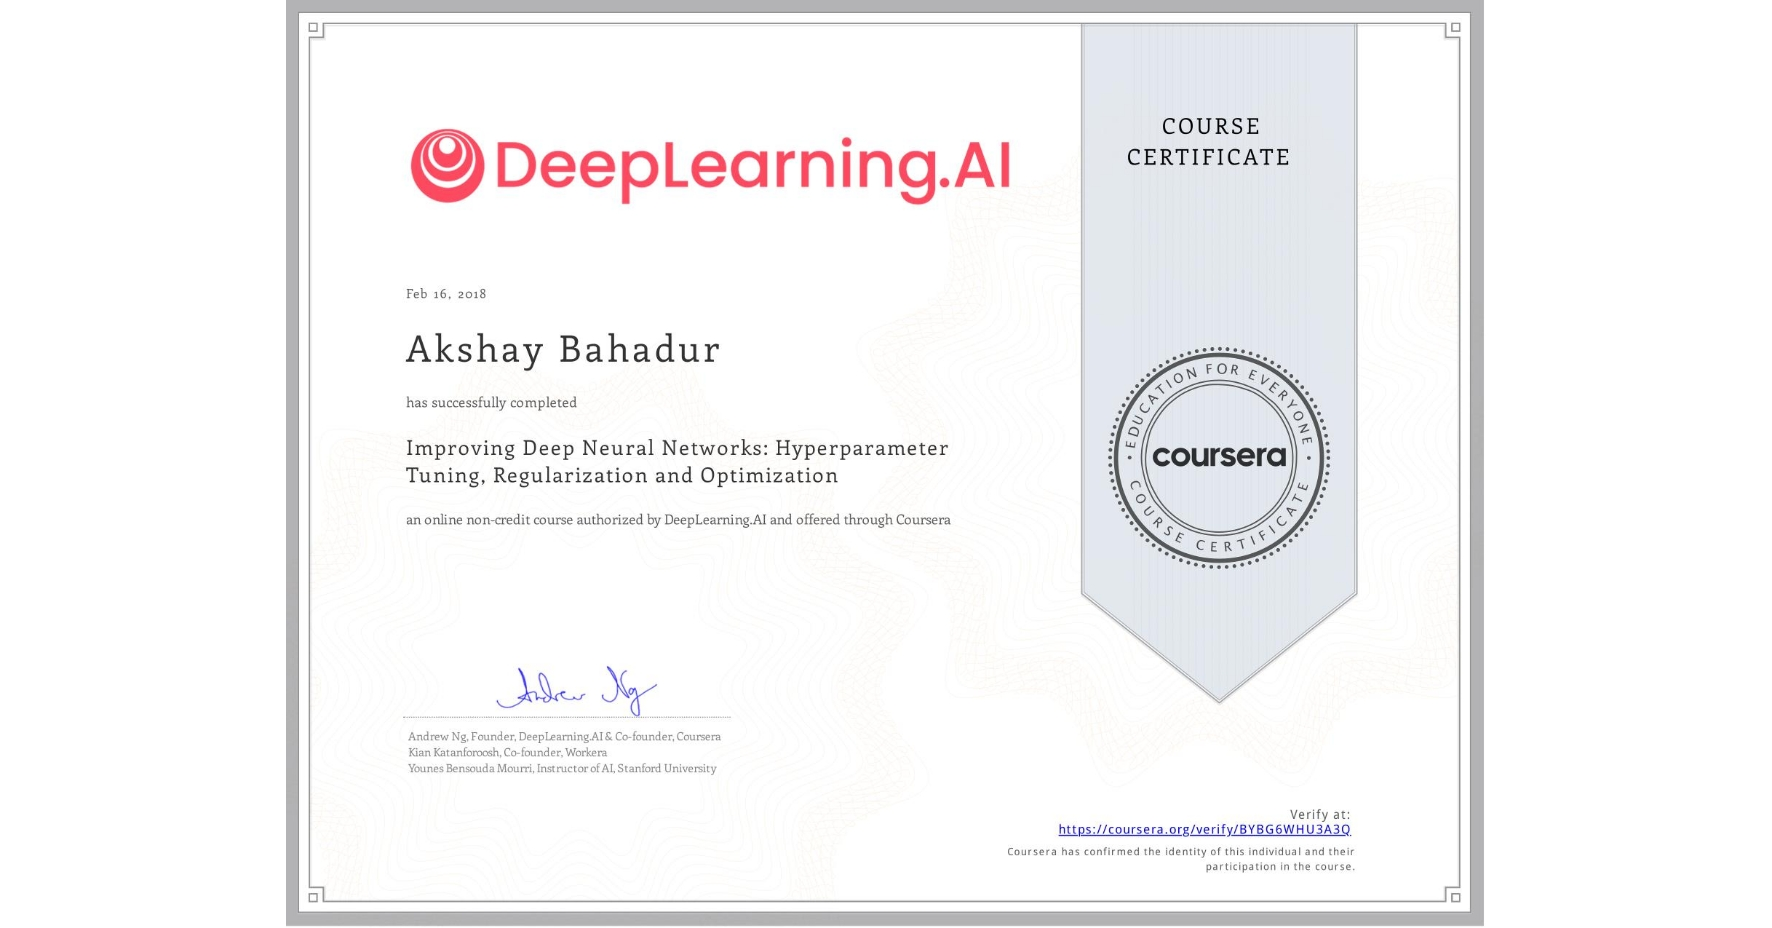 View certificate for Akshay Bahadur, Improving Deep Neural Networks: Hyperparameter Tuning, Regularization and Optimization, an online non-credit course authorized by DeepLearning.AI and offered through Coursera